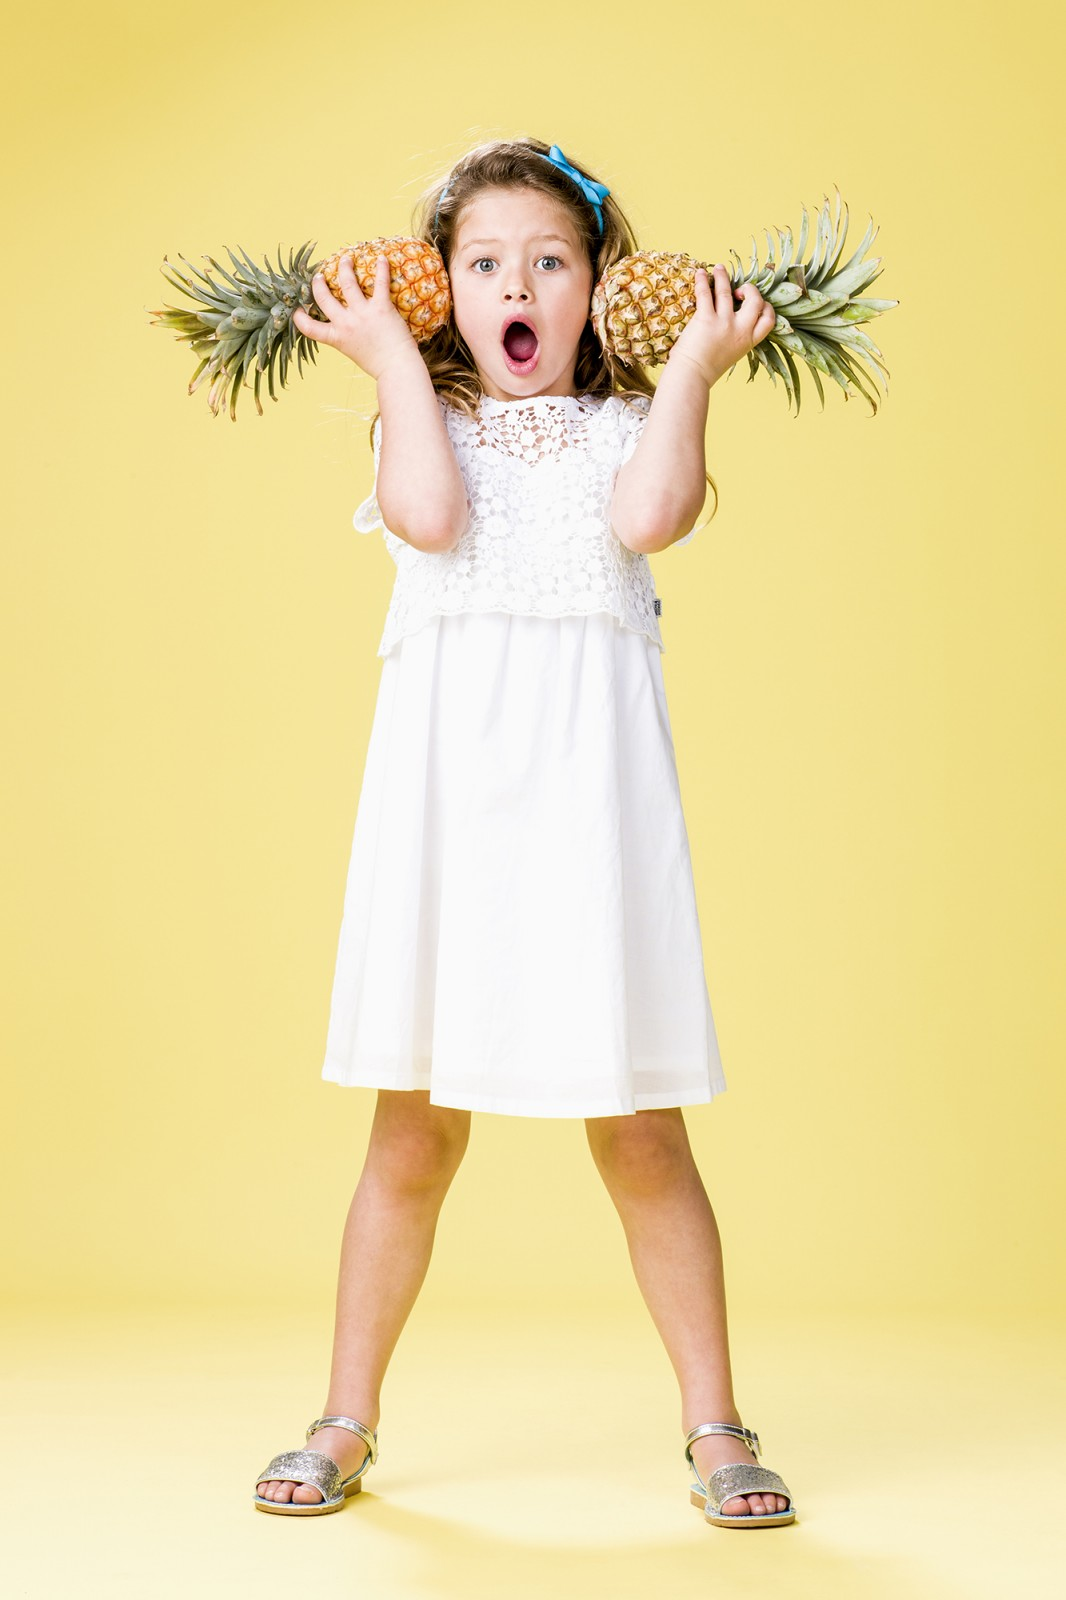 Sydney kids fashion photographer Michelle Young shoots Osh Kosh Australia in studio for Osh Kosh kids and childrens fashion for Summer 2015. Beach Boys for summer 2015 with Osh Kosh boys clothing and...